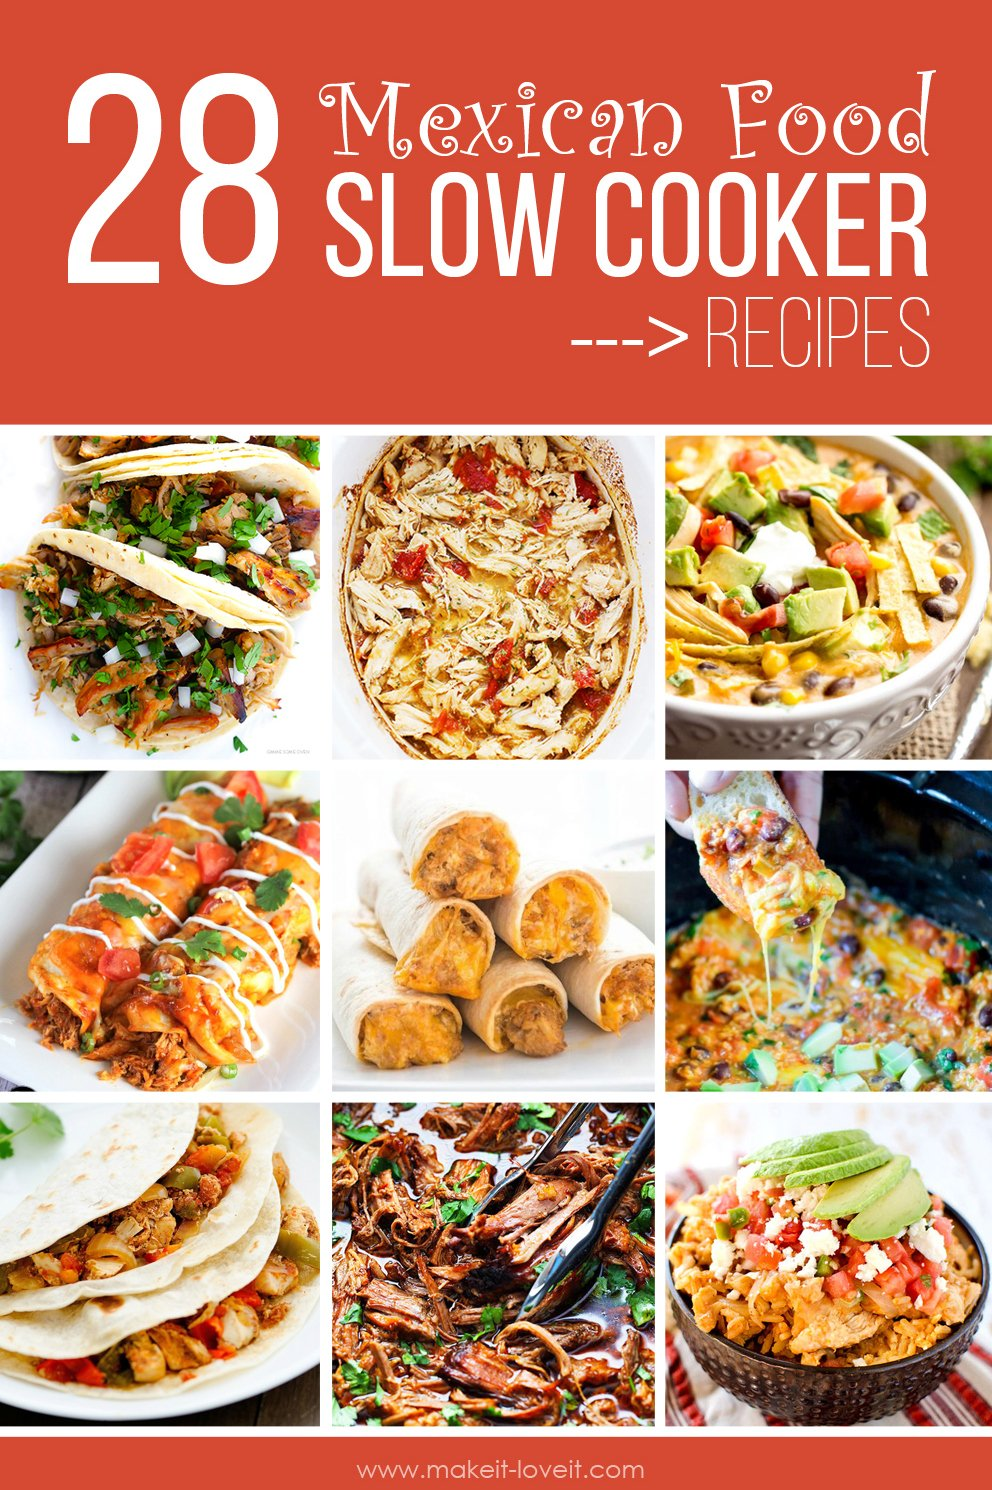 28 Favorite Mexican Food SLOW COOKER Recipes